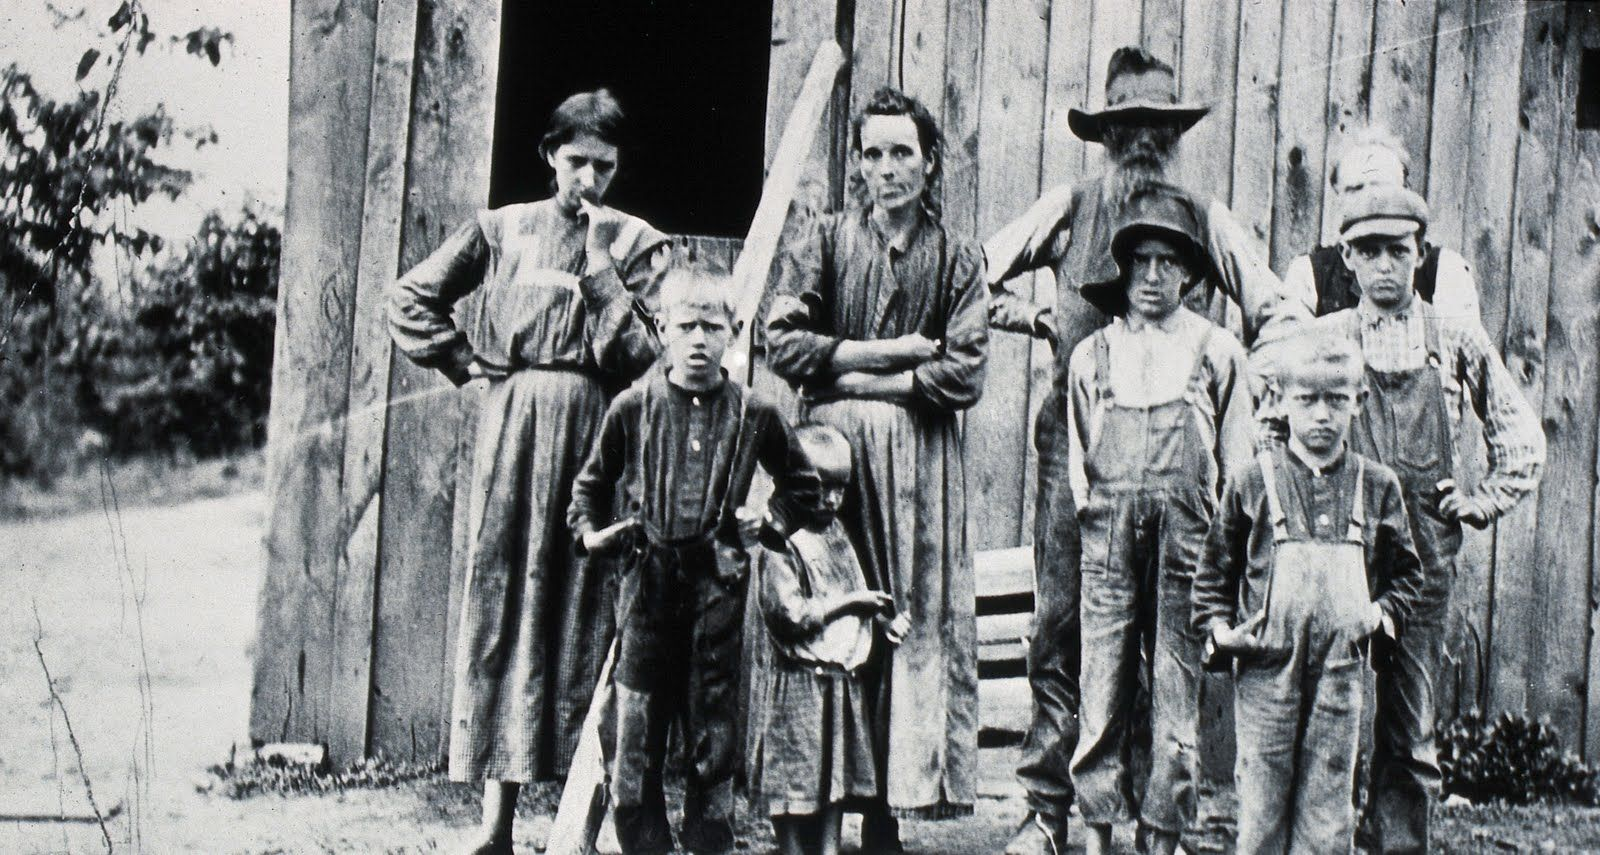 what happened to orphans in victorian times